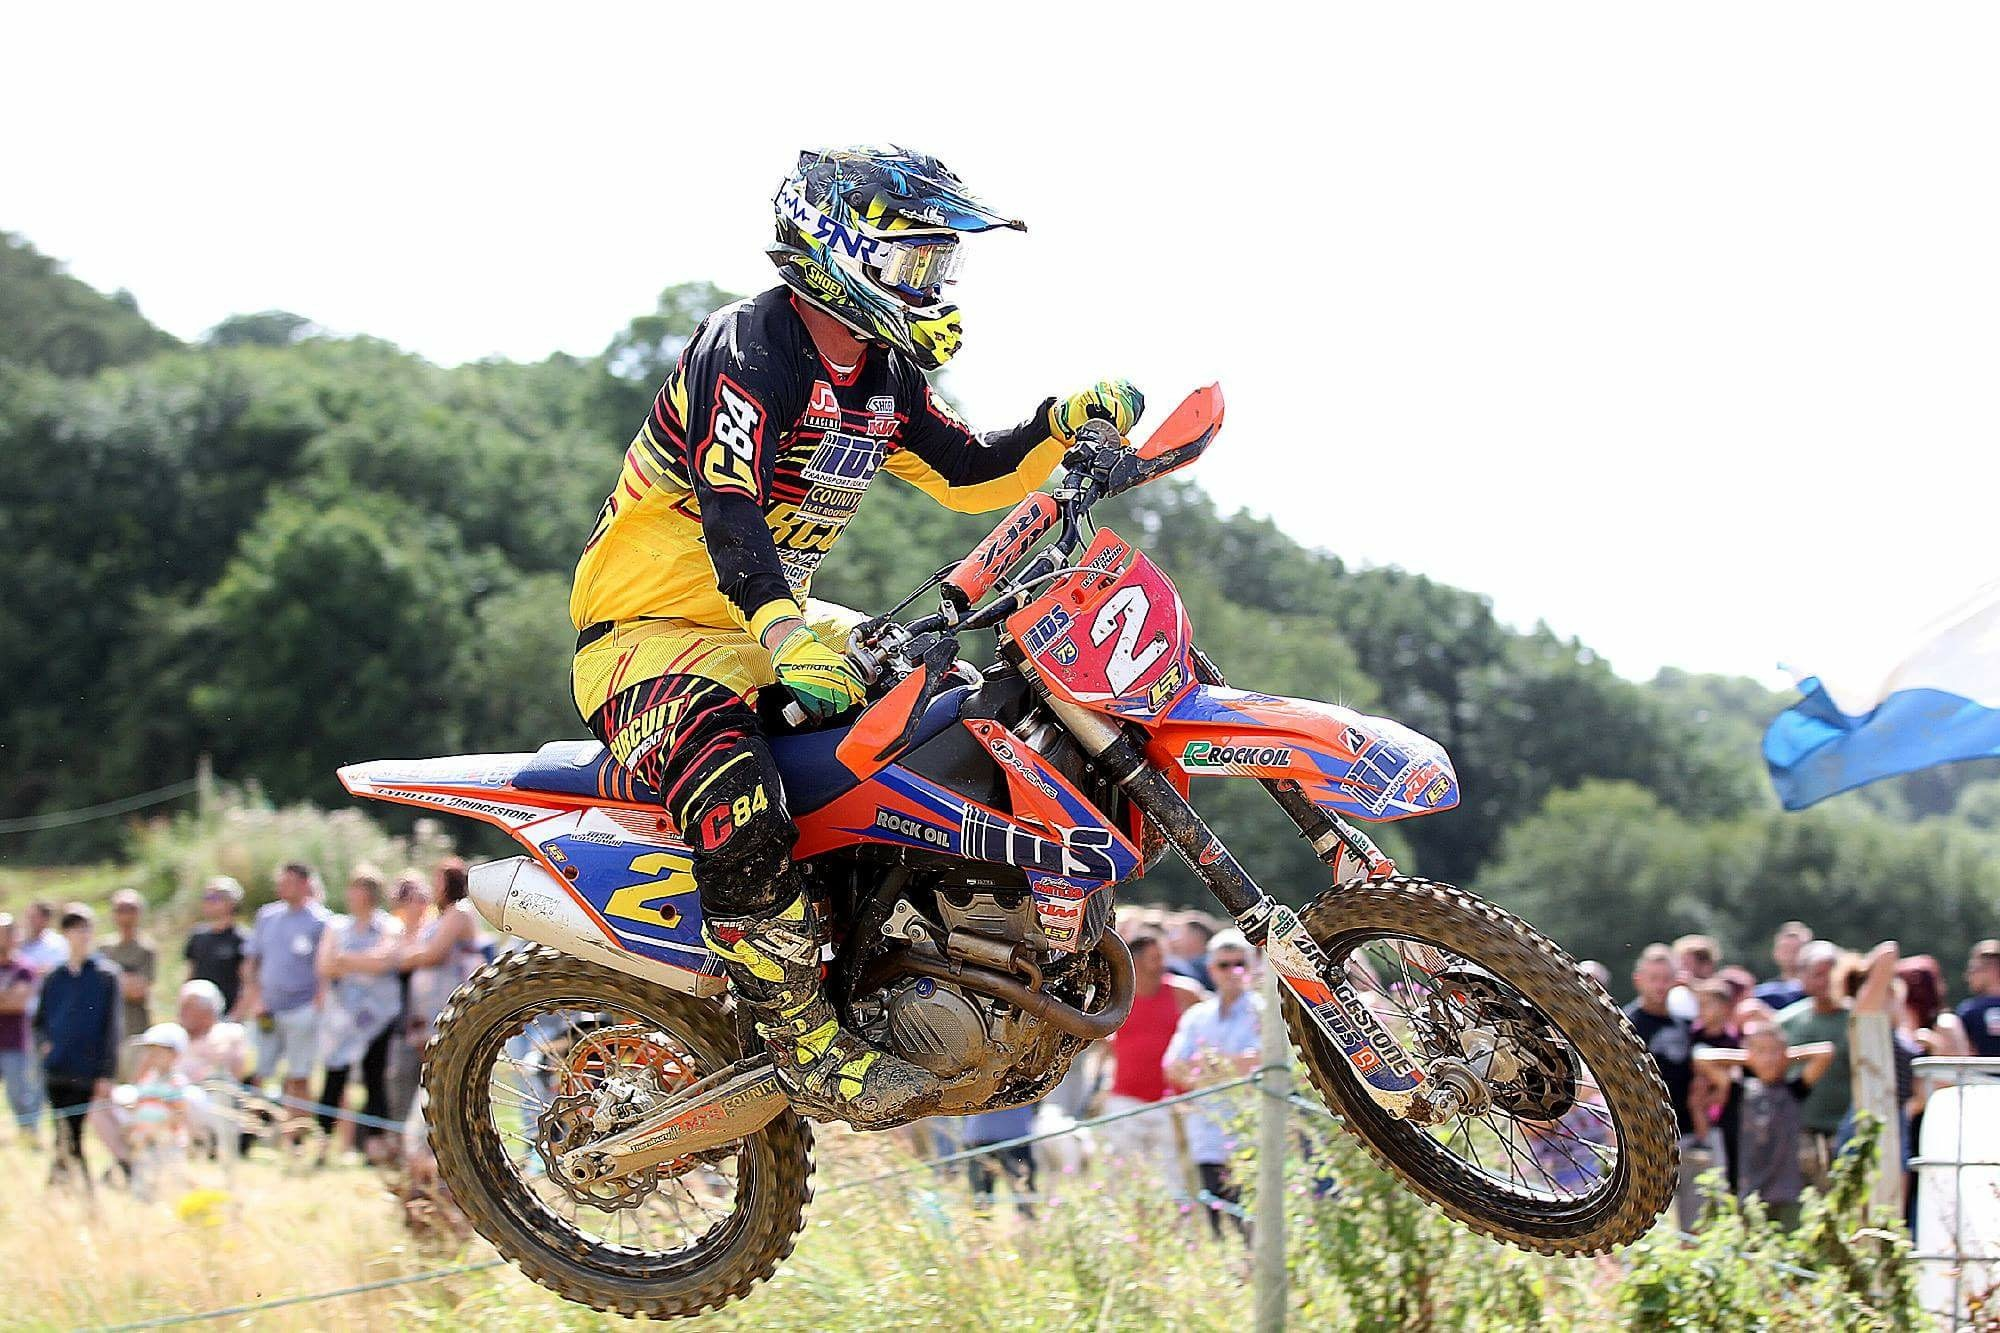 5-motocross-in-review-josh-waterman